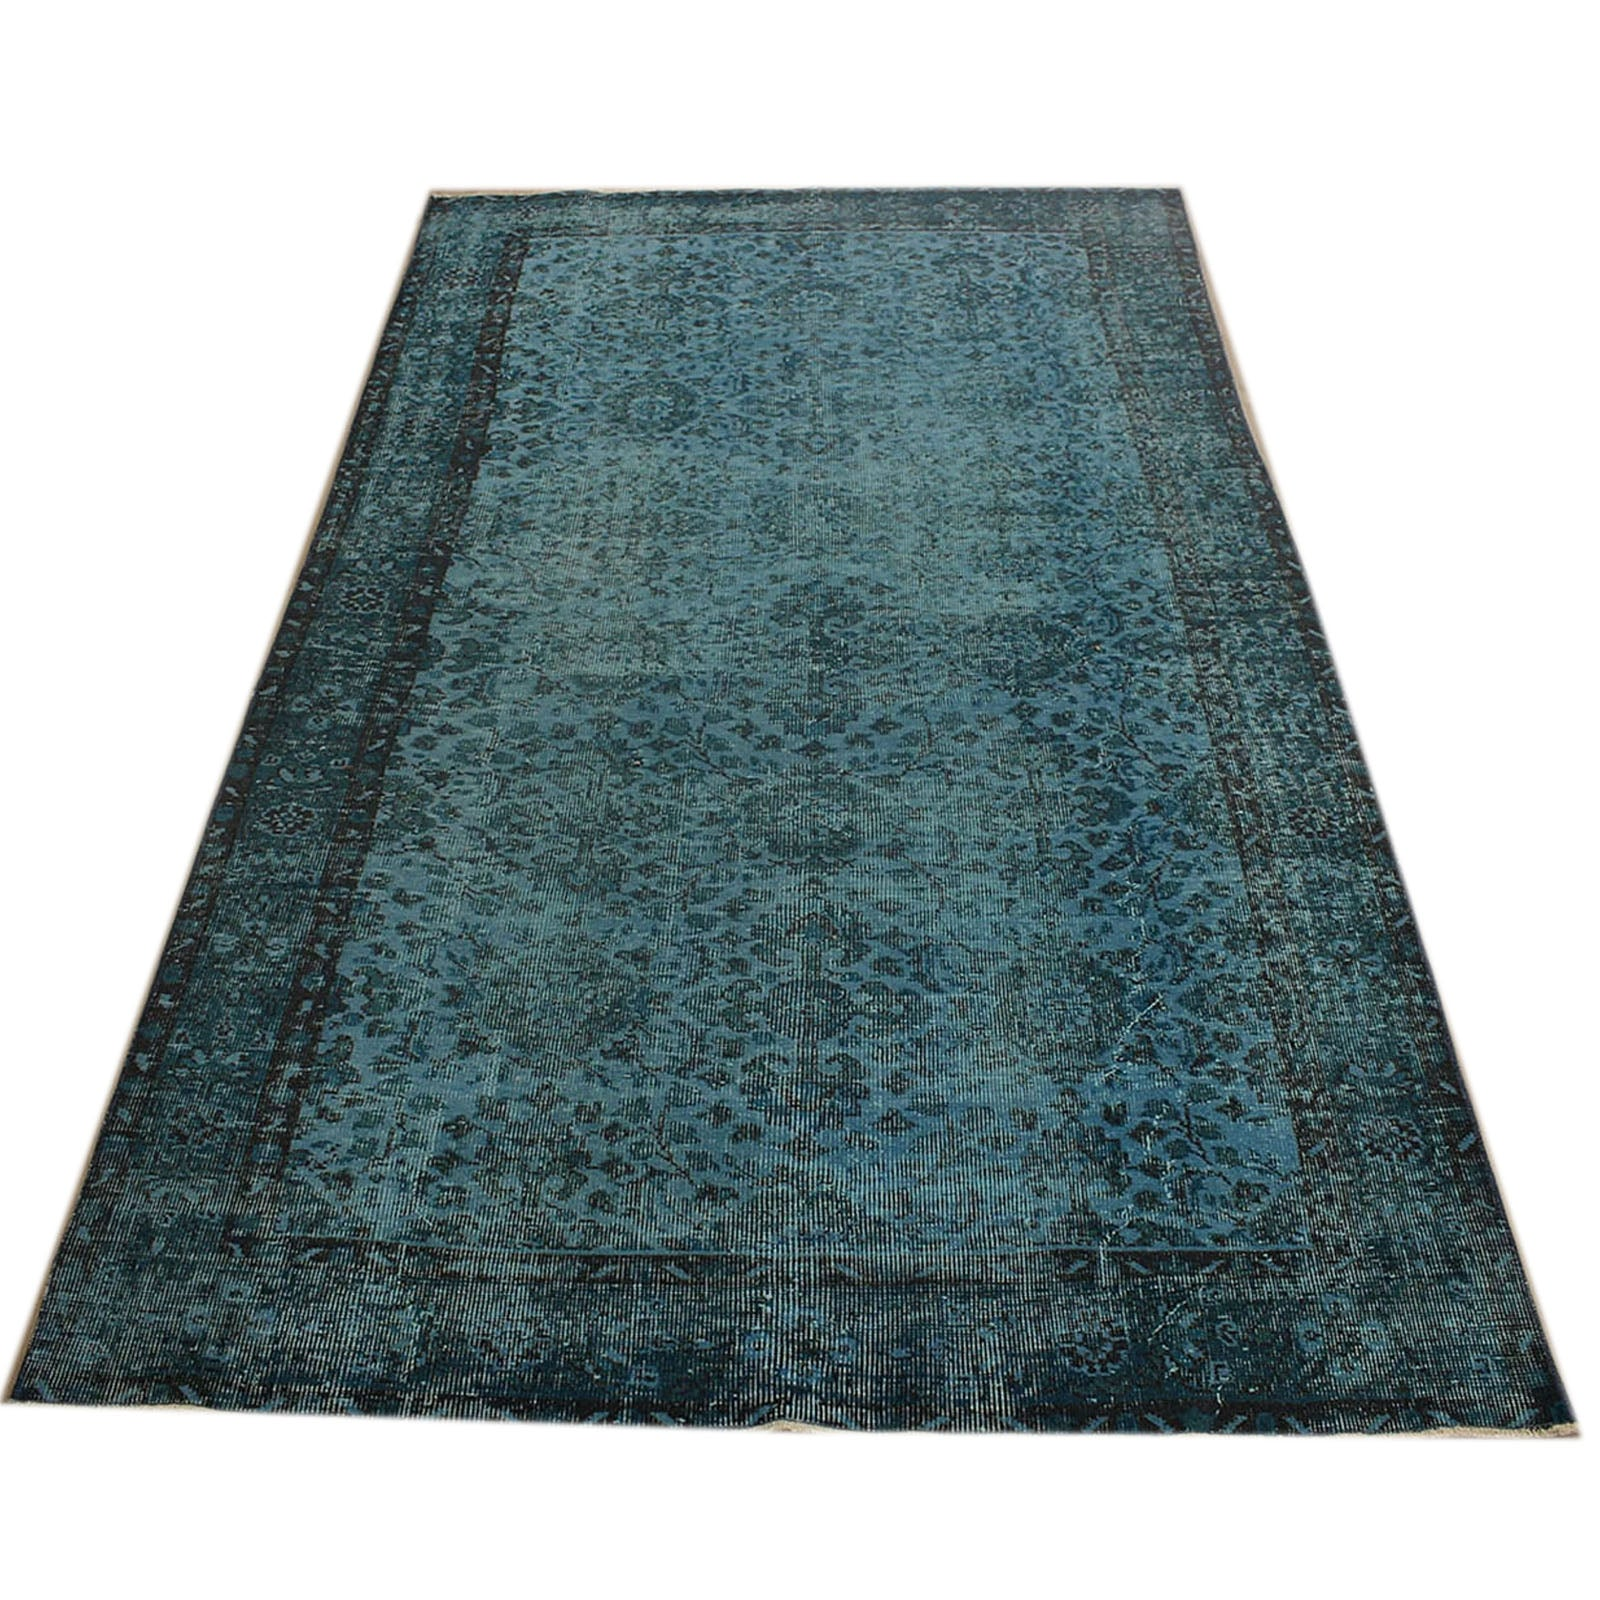 Hali 160X264 CM Bursa Handmade over dyed rug 2399